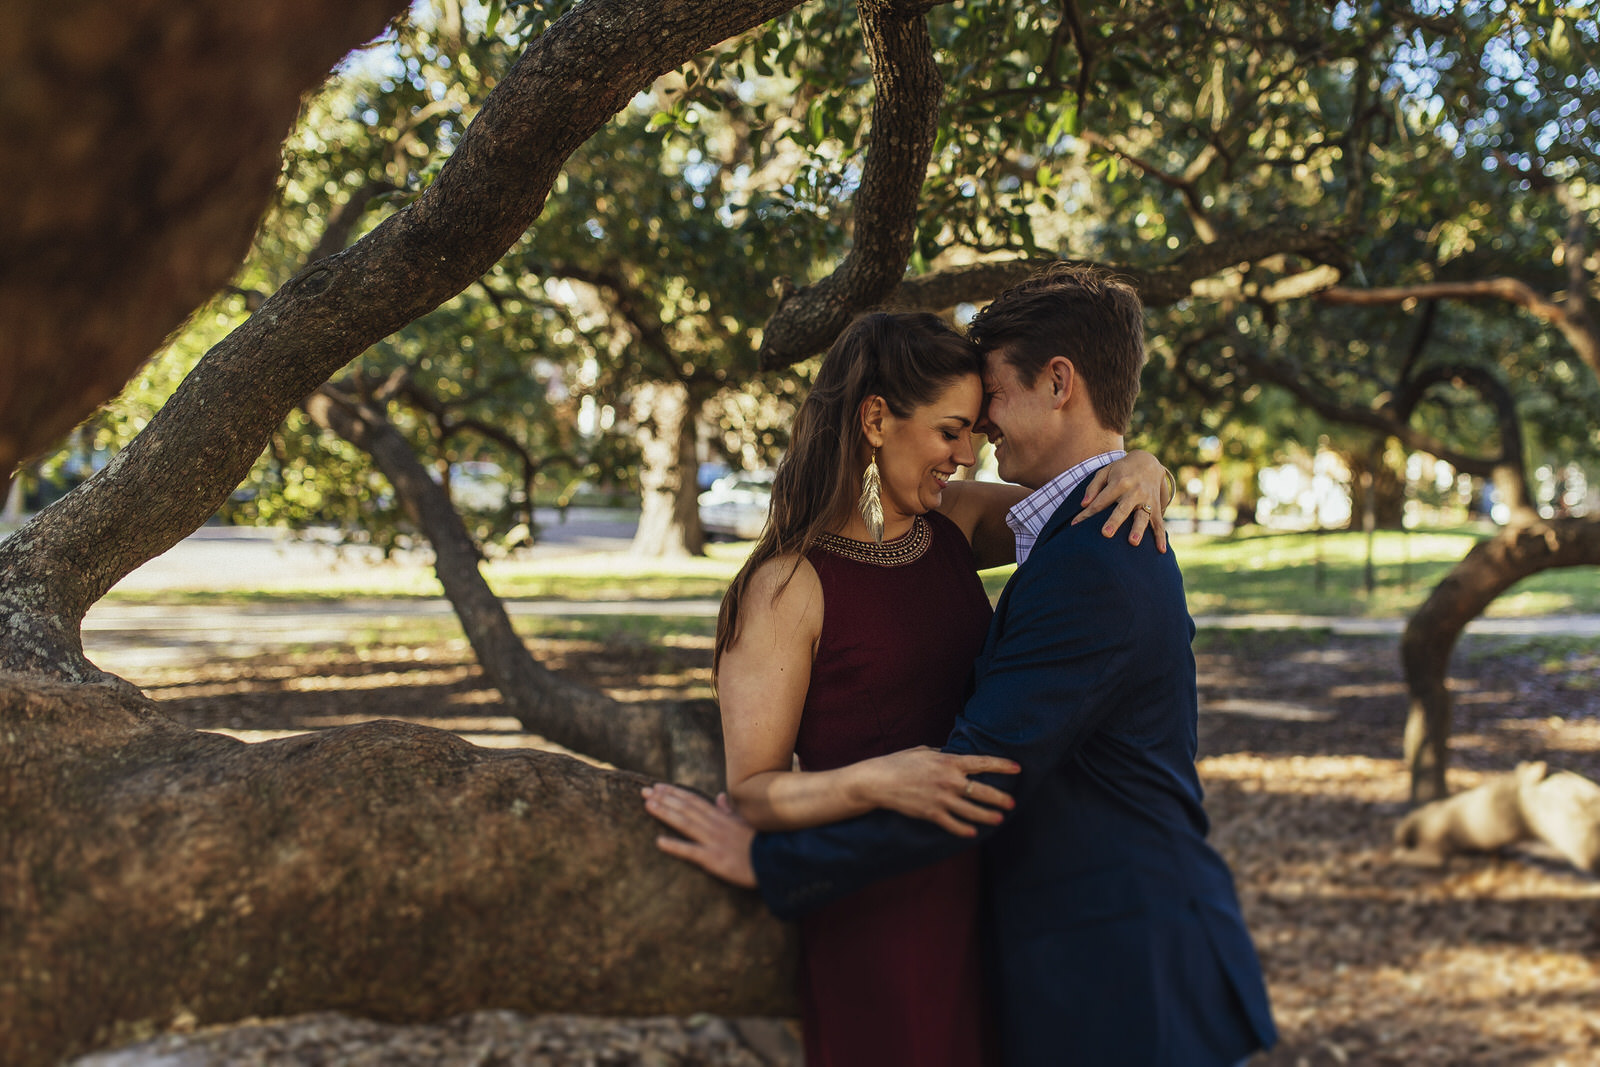 lower-garden-district-engagement-new-orleans-wedding-photography